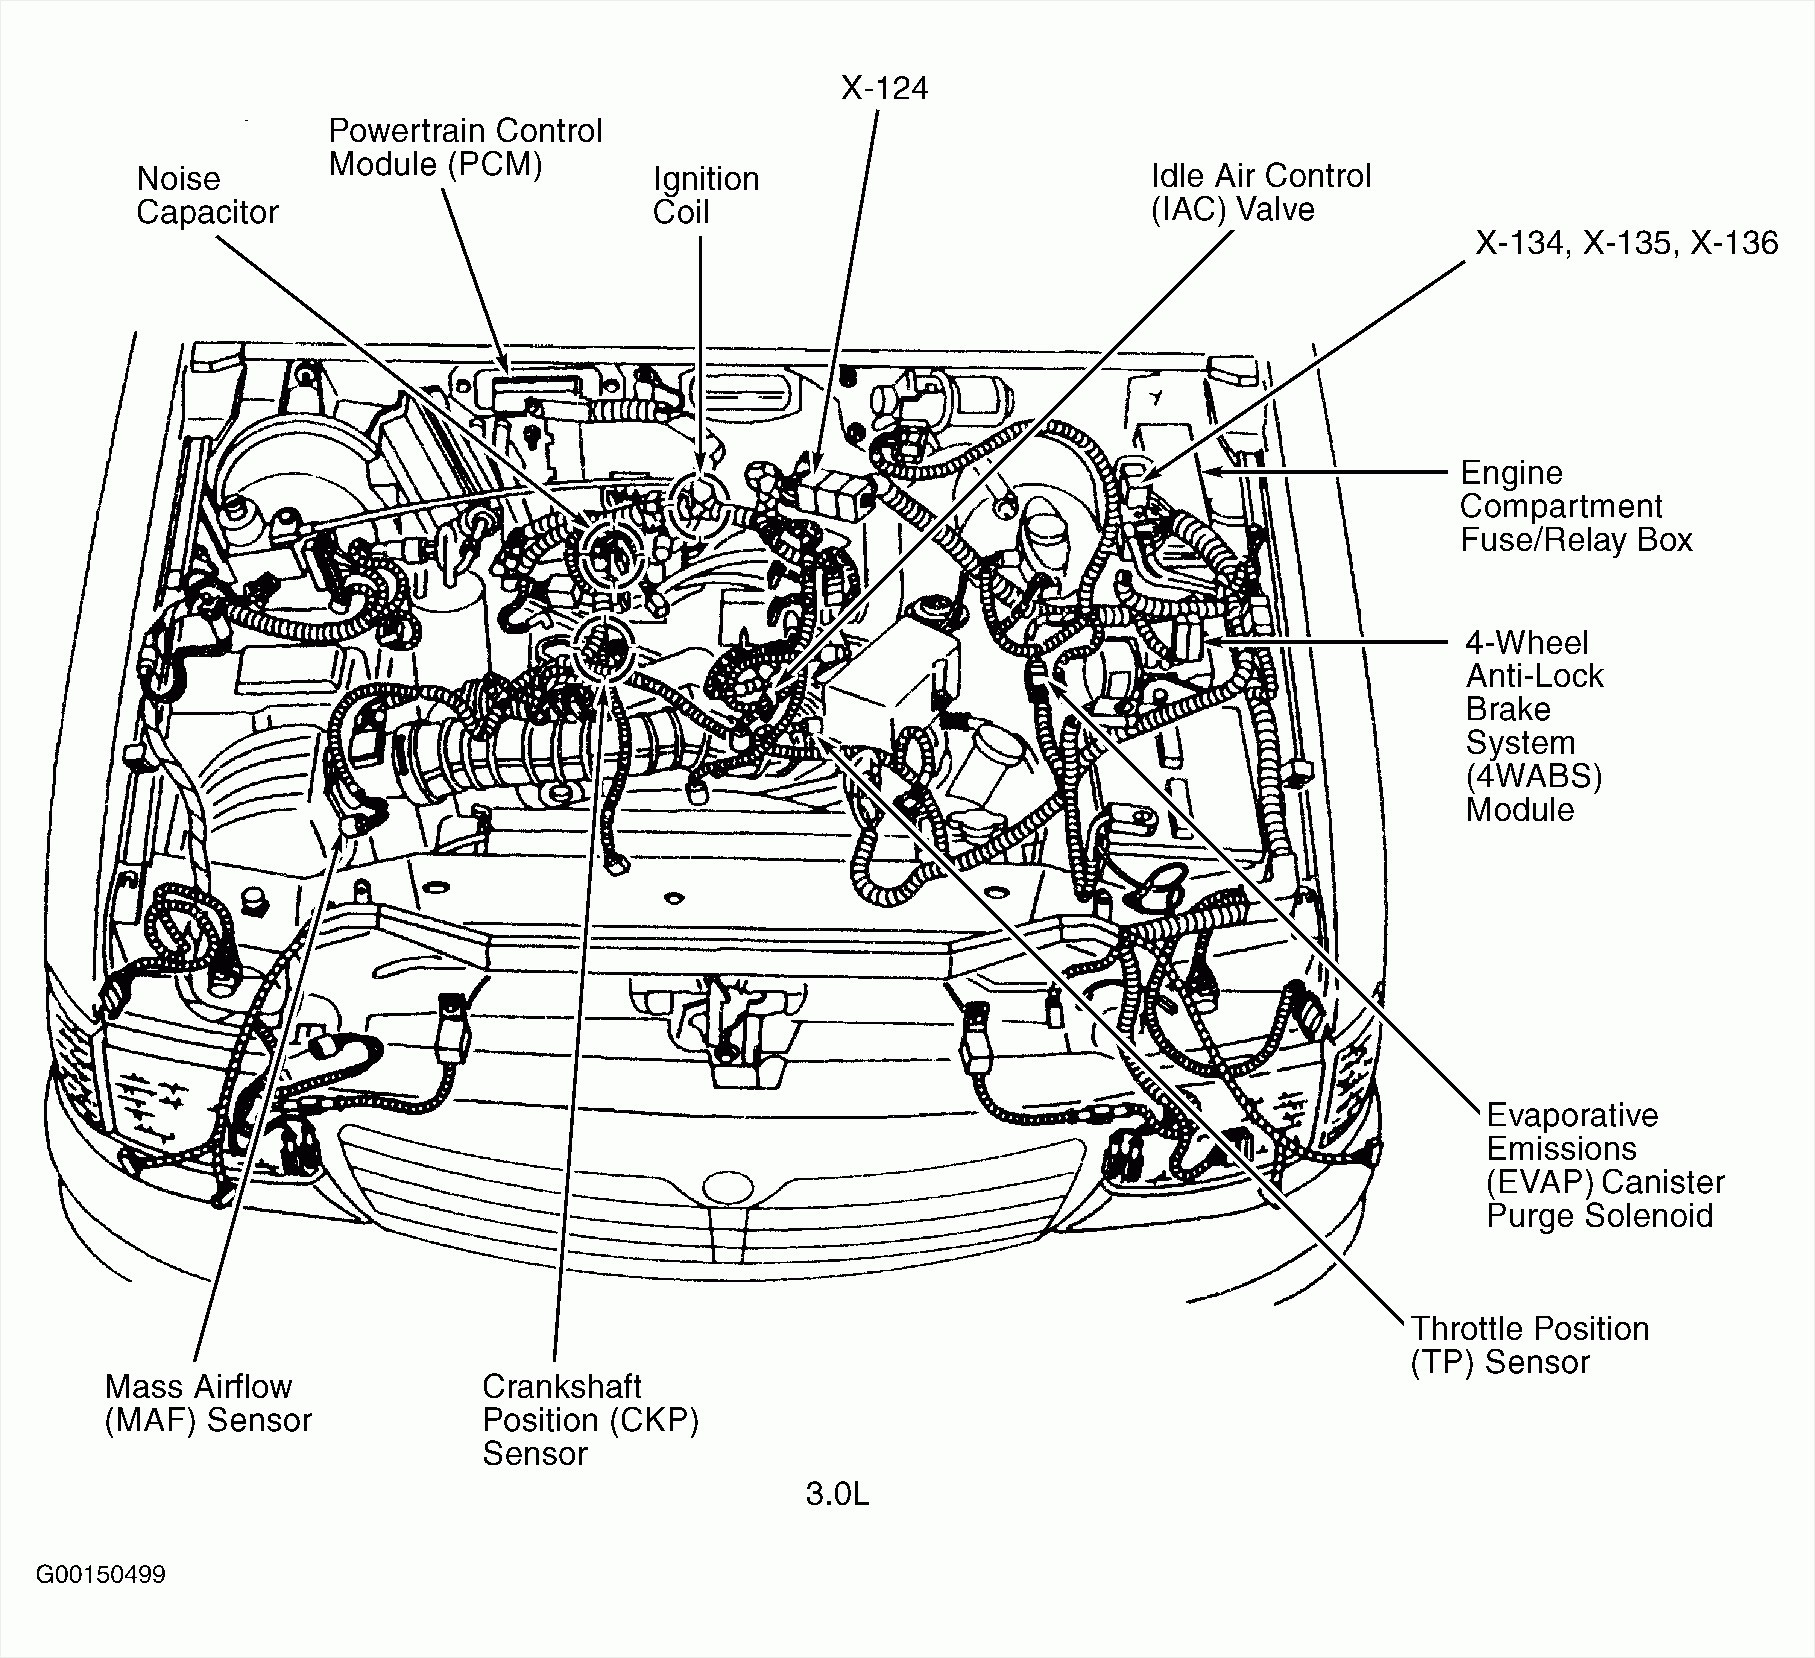 Suzuki Grand Vitara Wiring Diagram On 2007 Acura Tsx Engine 2010 Complete Car Scheme And Images Gallery 2008 Mazda 3 Harness Easy Diagrams U2022 Rh Art Isere Com